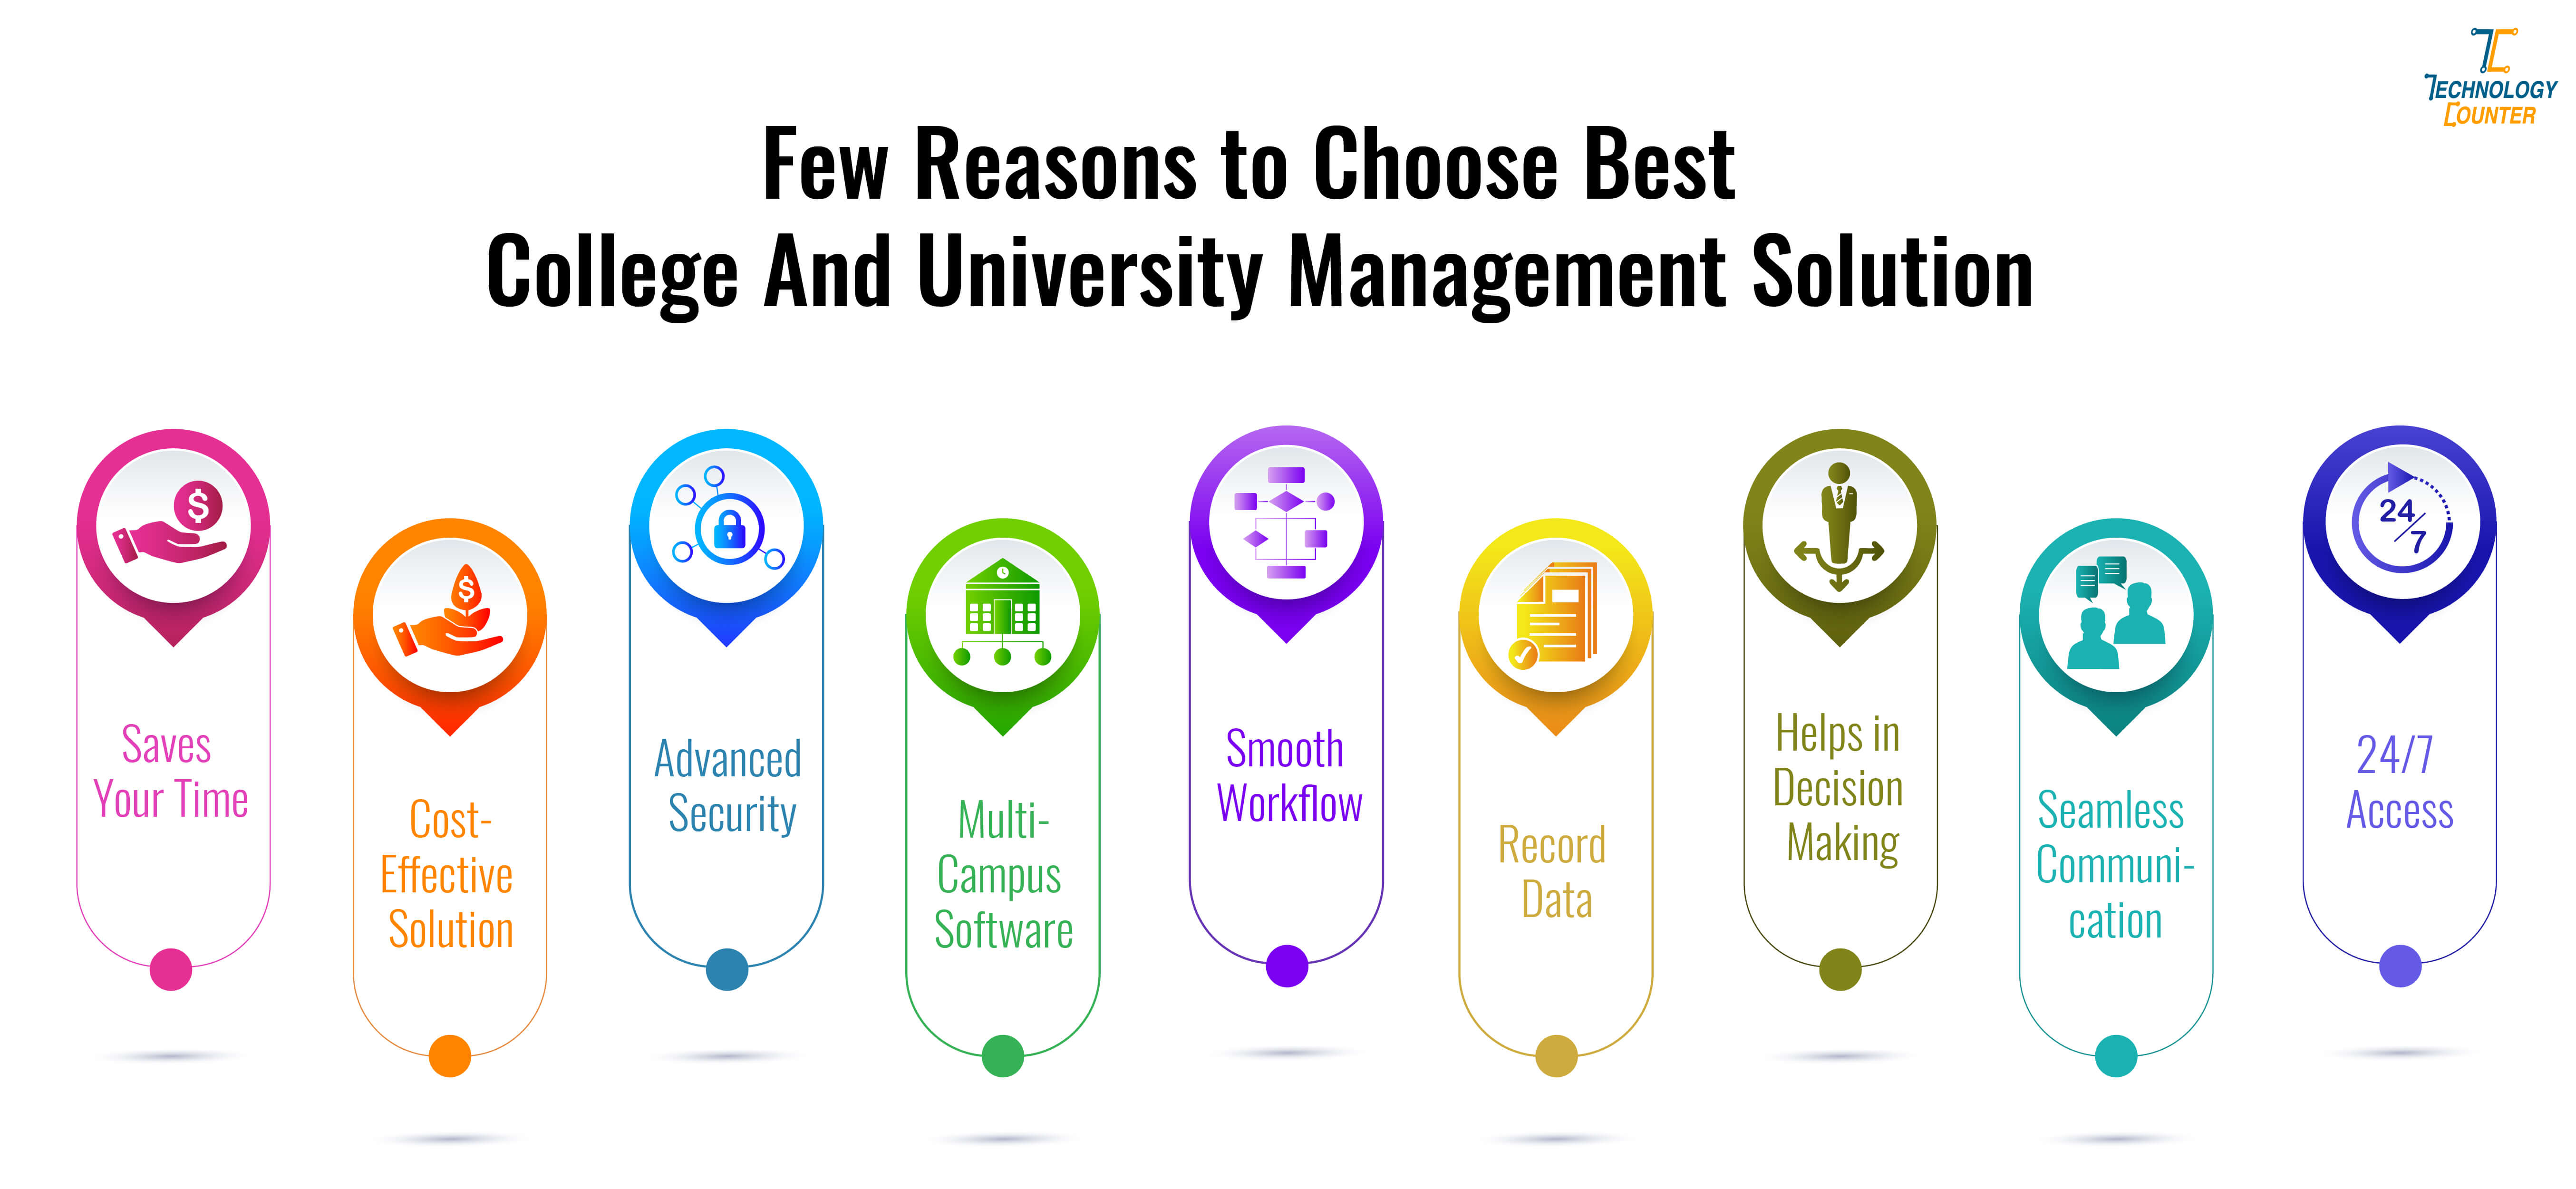 Few Reasons to Choose Best College & University Management Solution